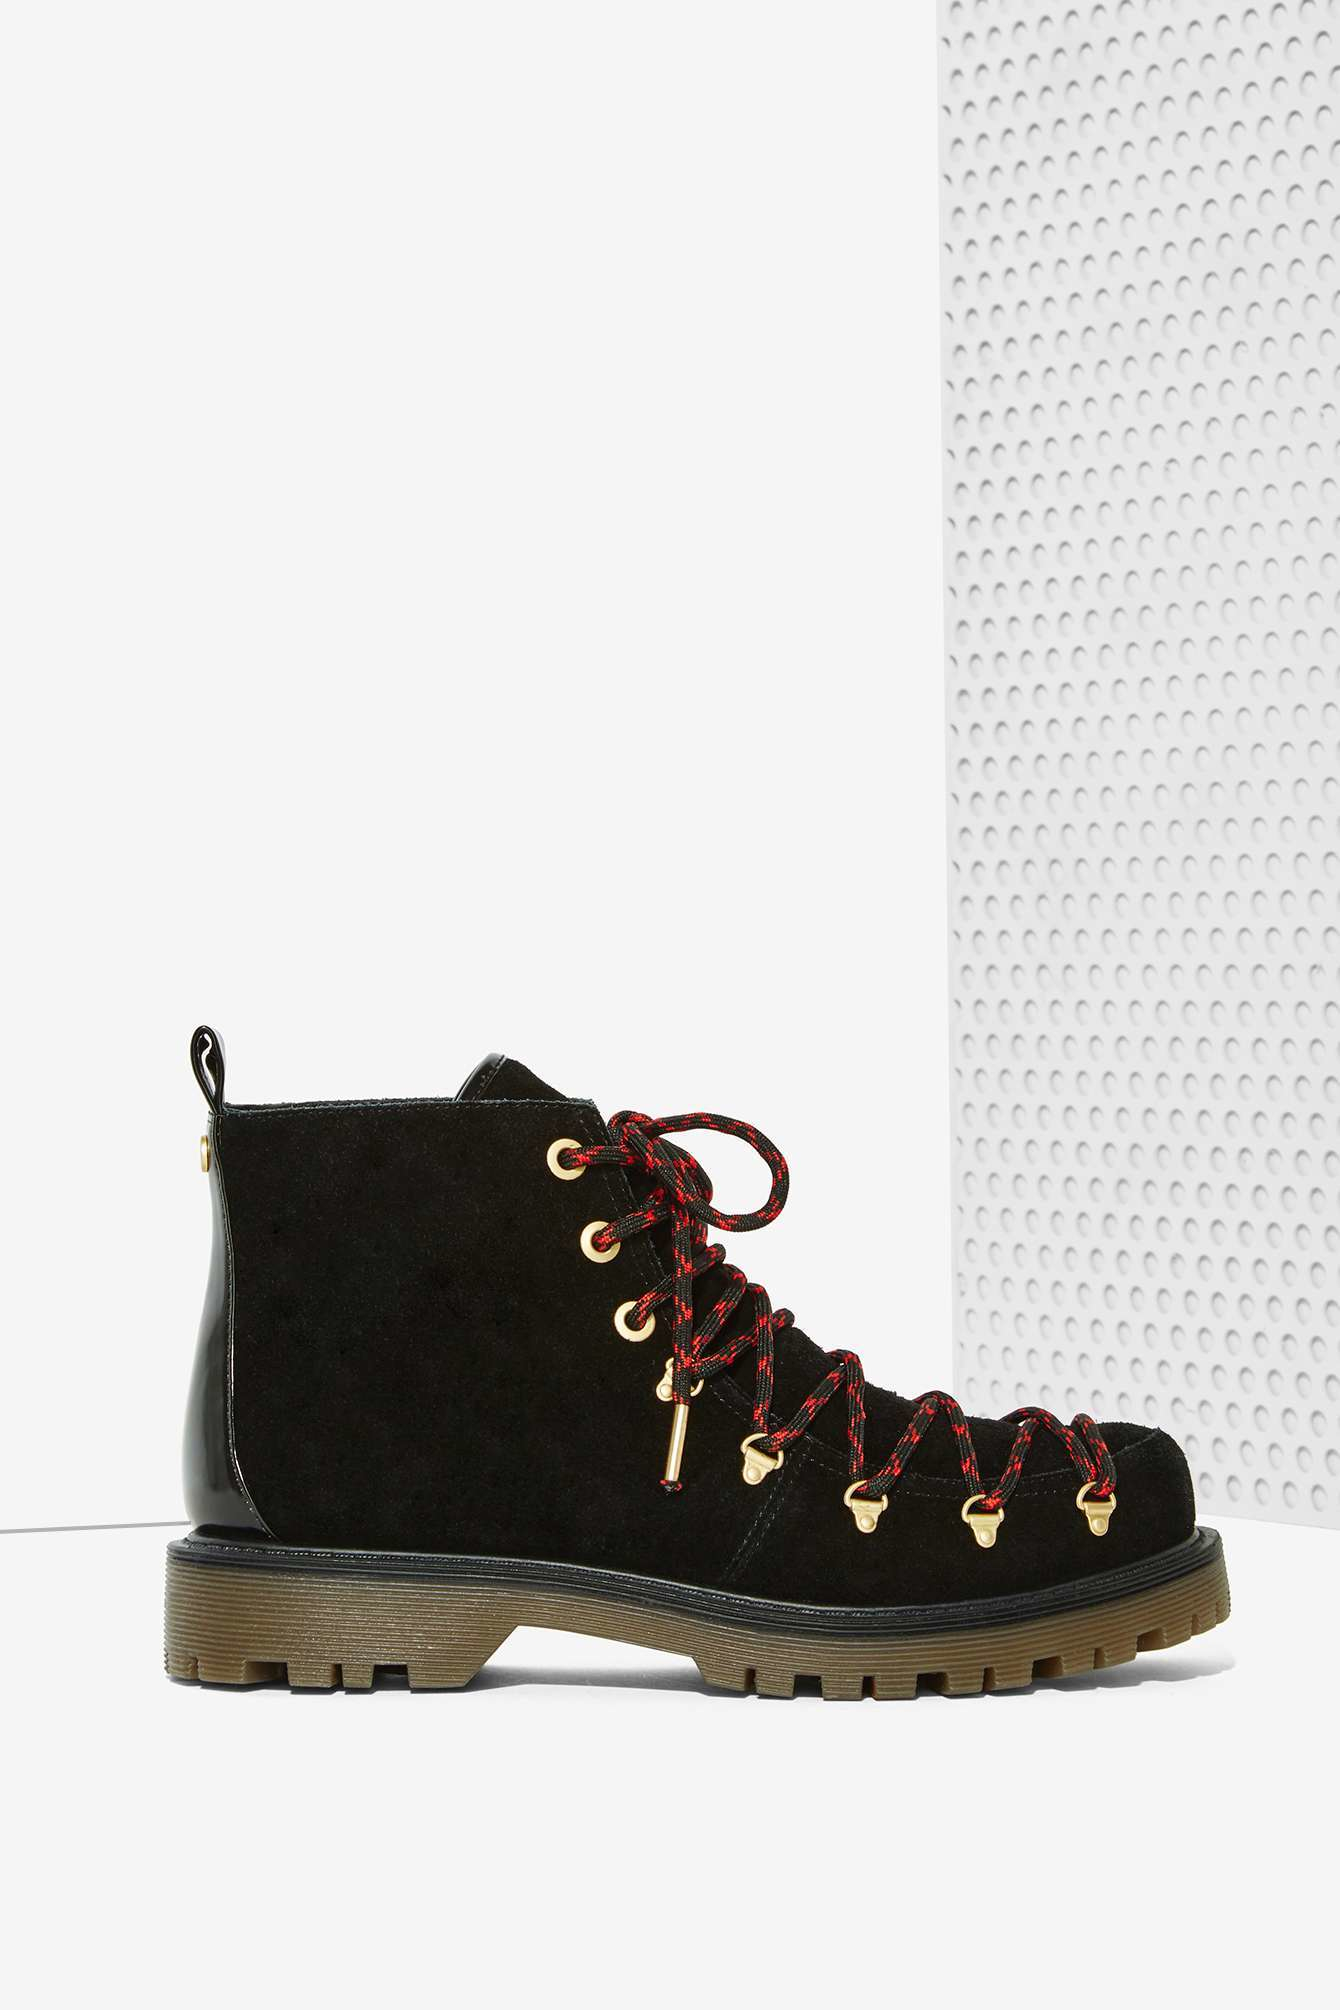 Lyst - Circus By Sam Edelman Kane Suede Boot in Black